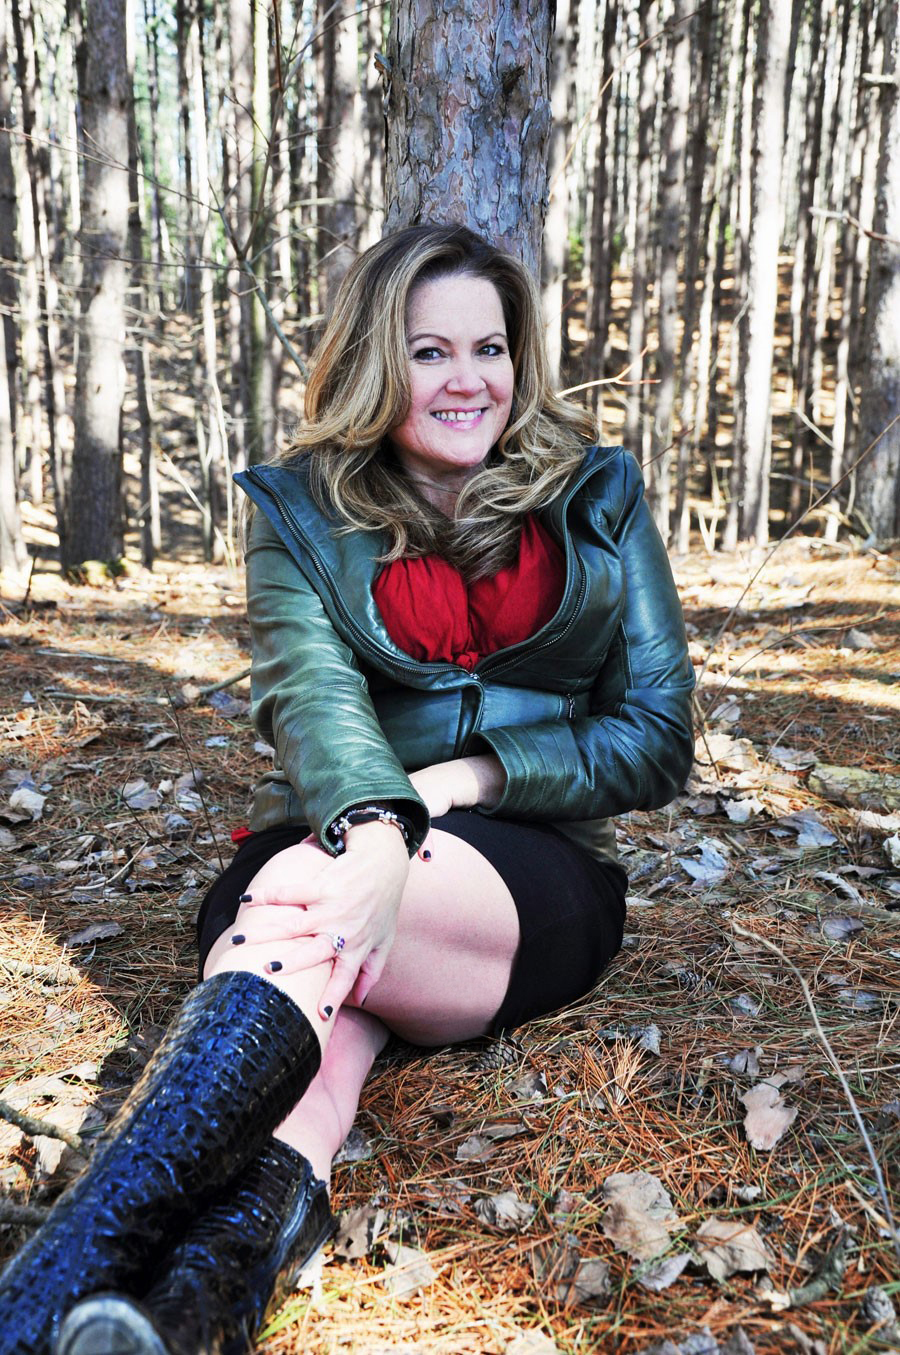 woman in red top, green leather jacket, black boots and skirt, sitting, leaning against tree in forest, all smiles